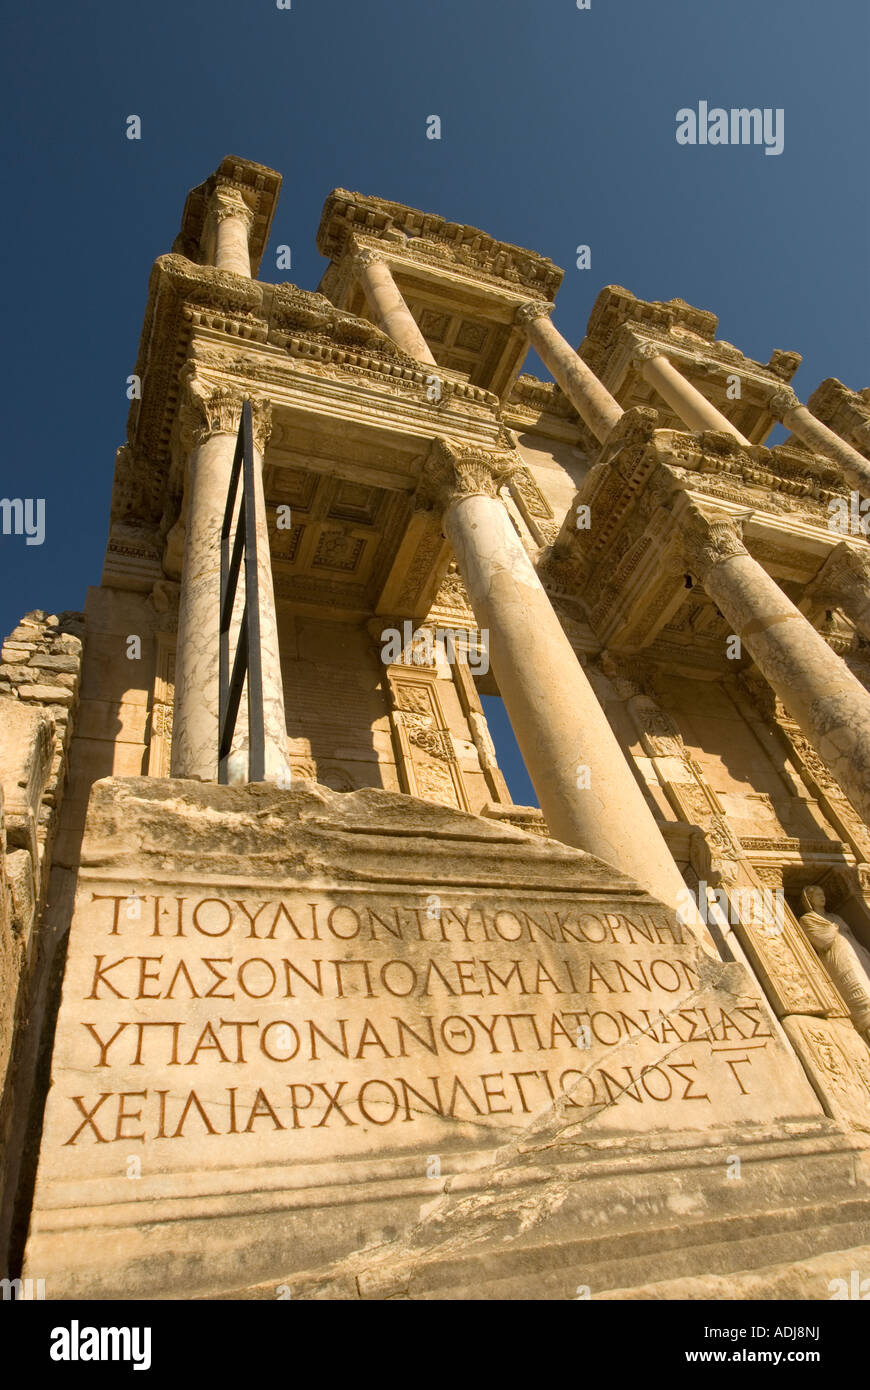 Library of Celsus at Ephesus, with Greek inscription, Turkey - Stock Image